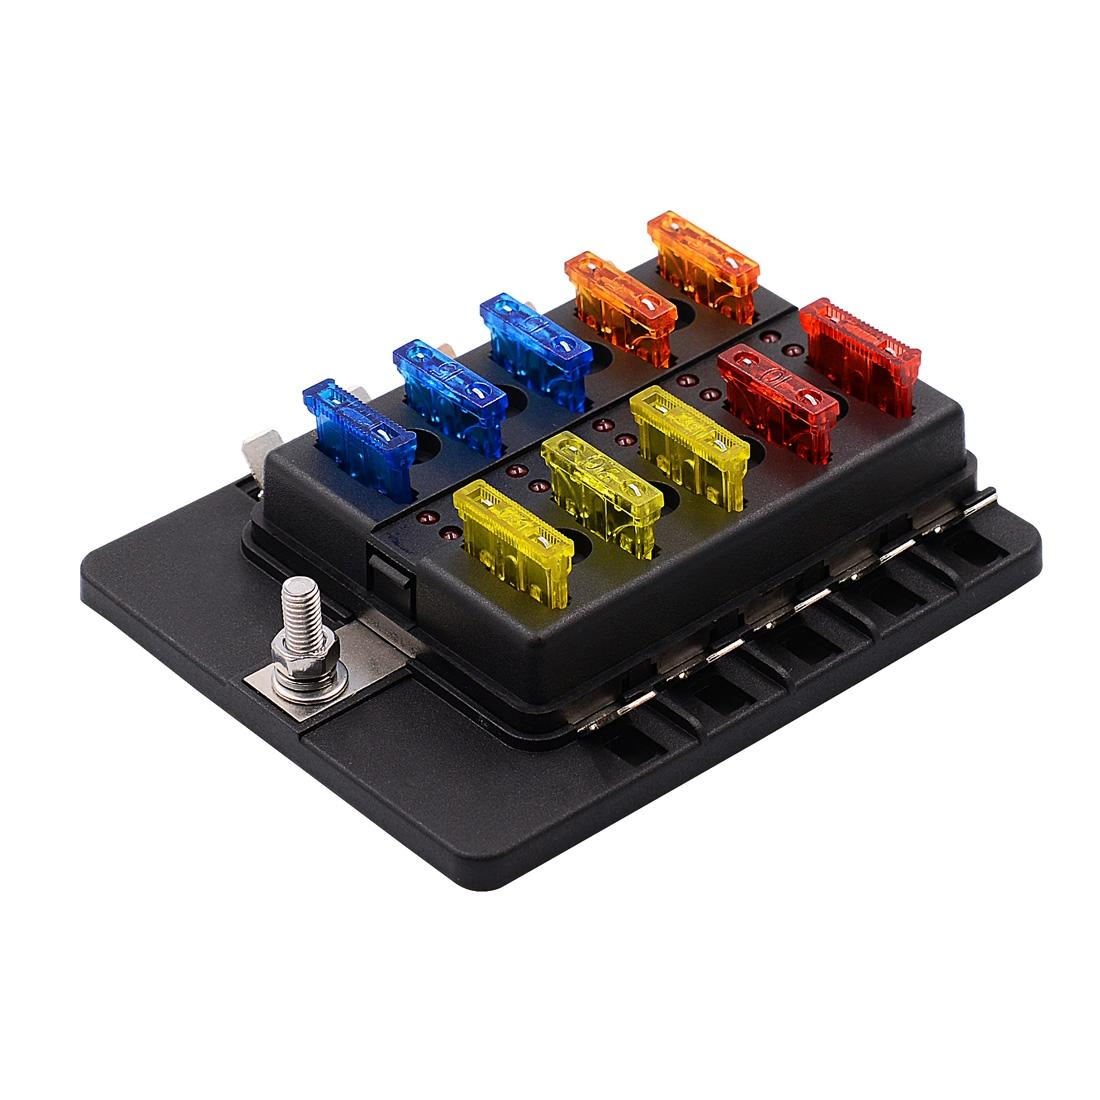 hight resolution of 1 in 10 out fuse box pc terminal block fuse holder kits with led warning indicator